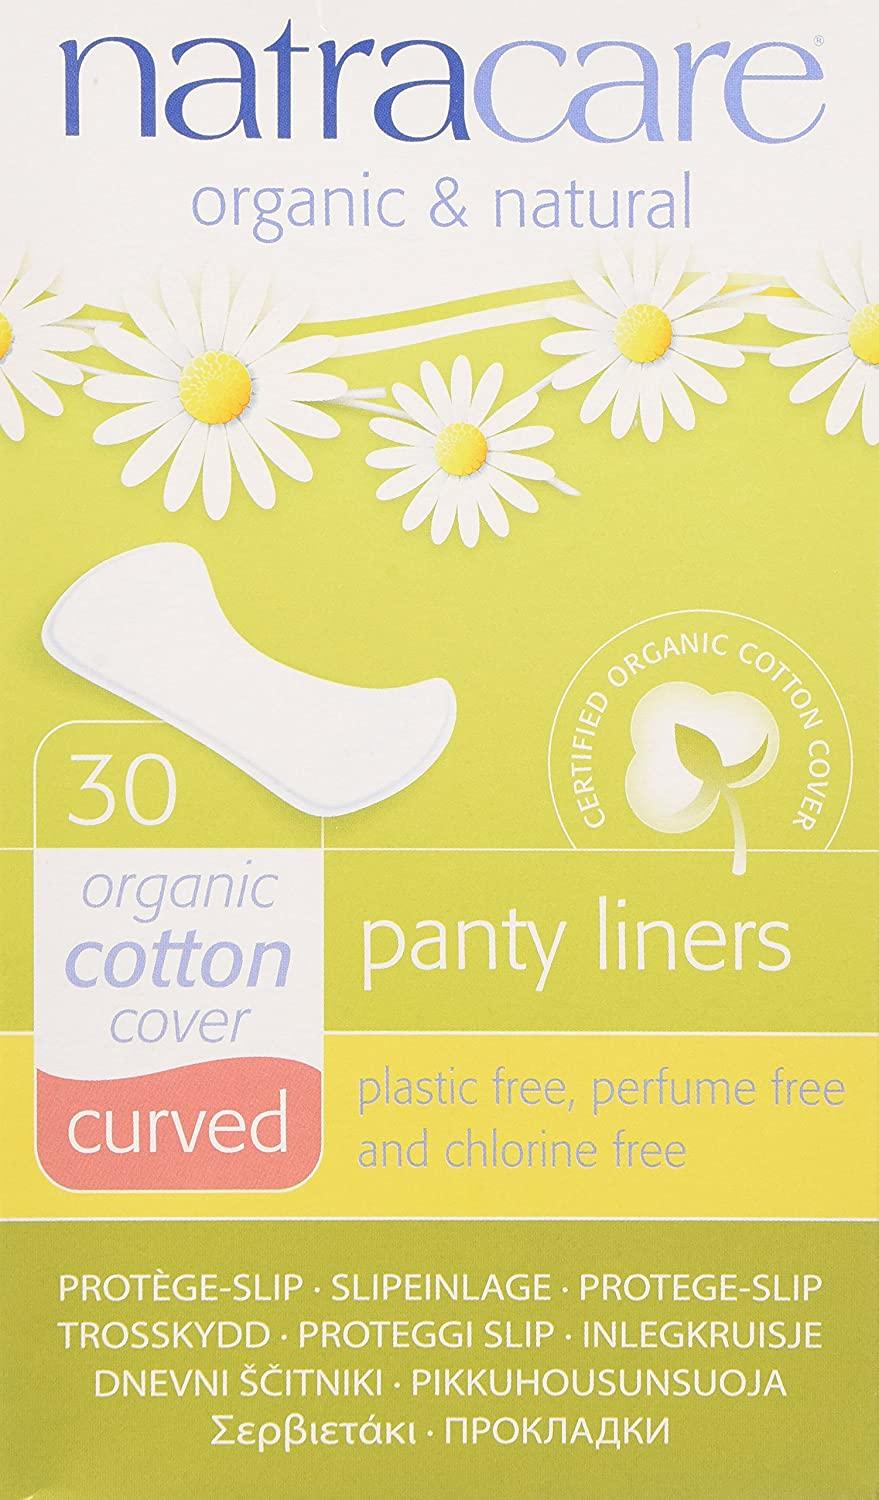 Natracare Organic & Natural Curved Panty Liners 30 ea